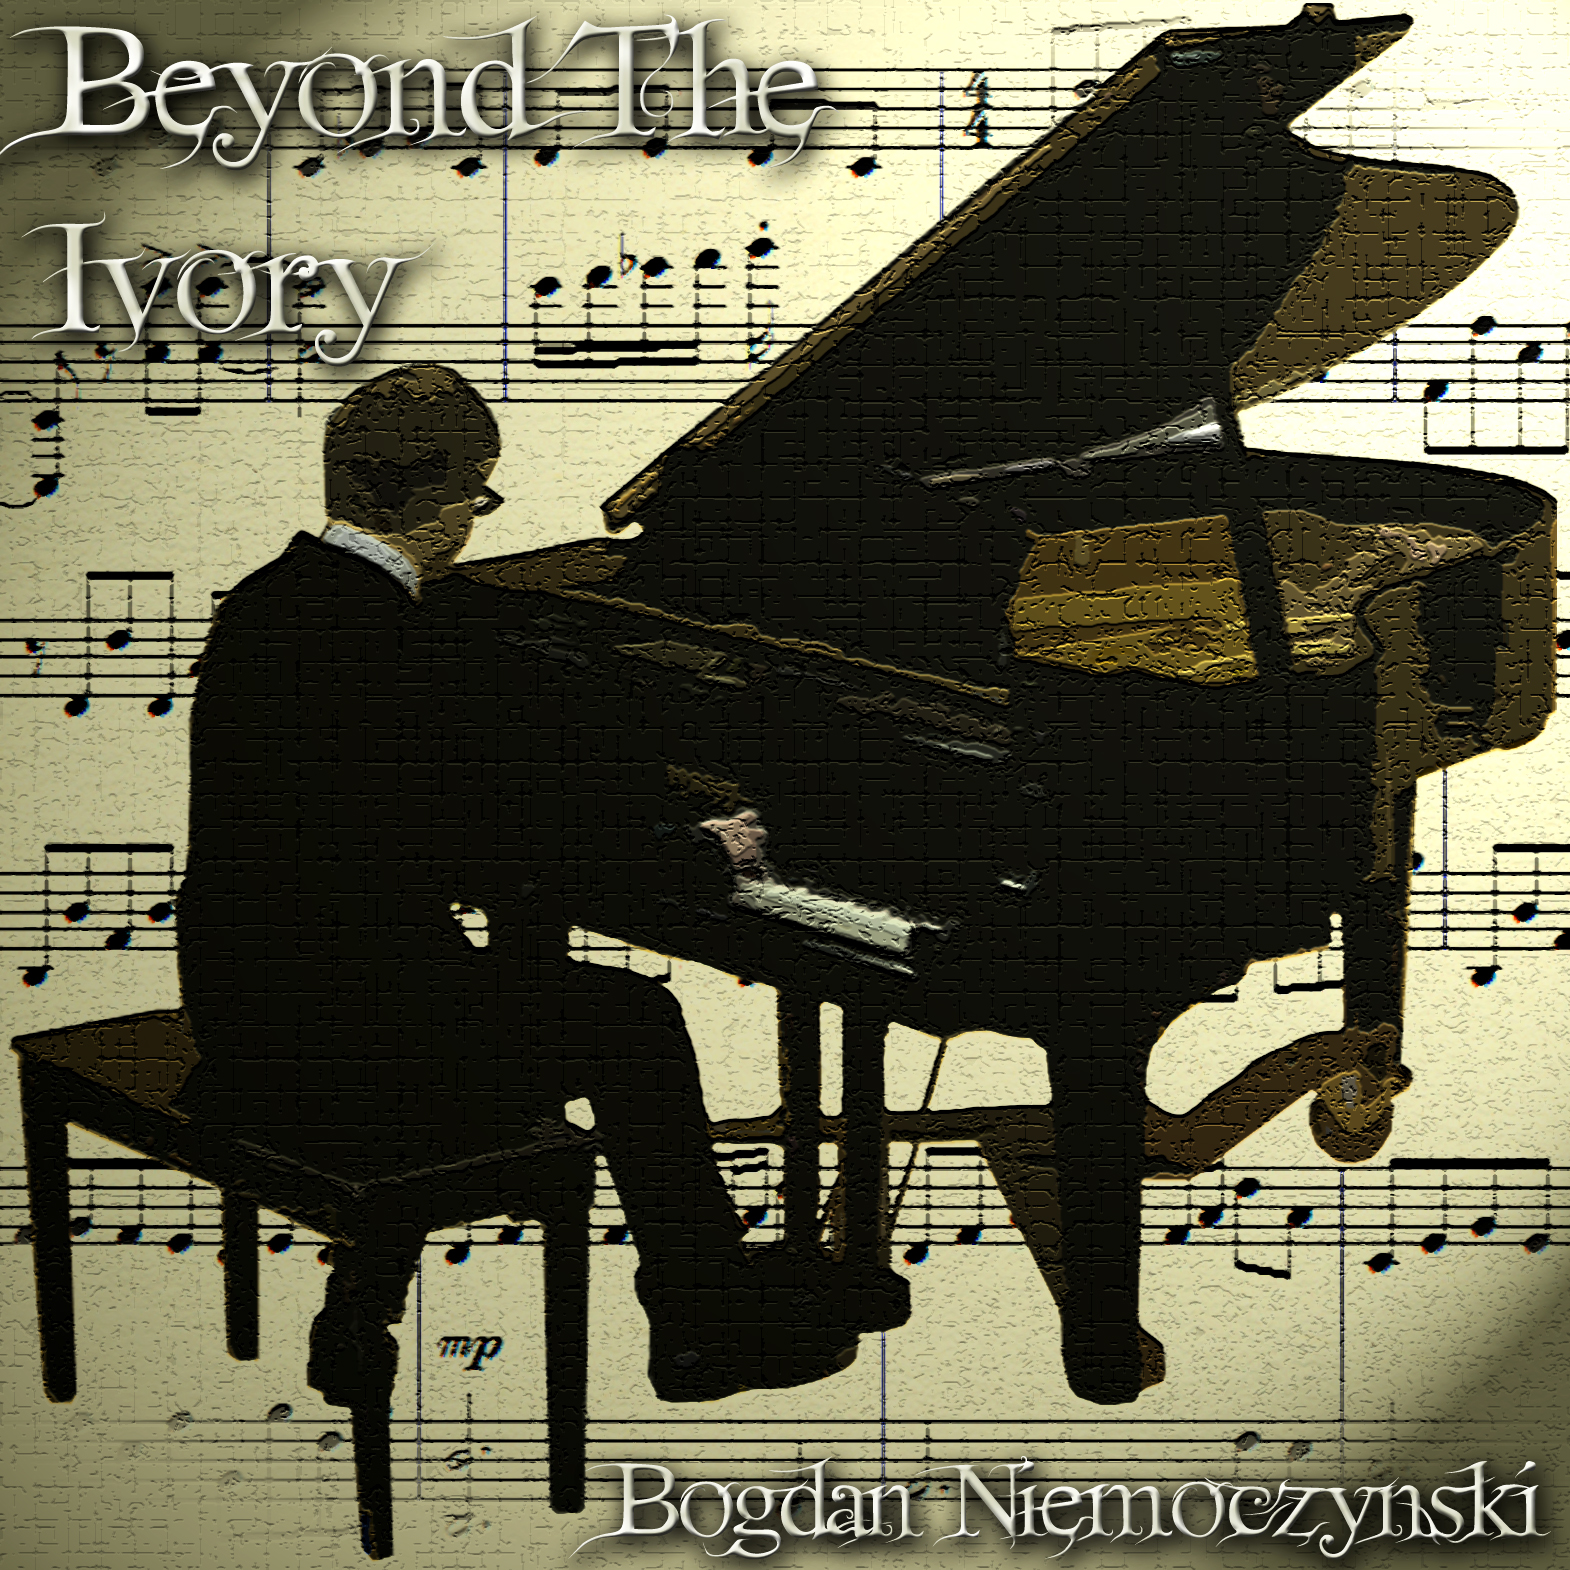 CD Cover, completed2010